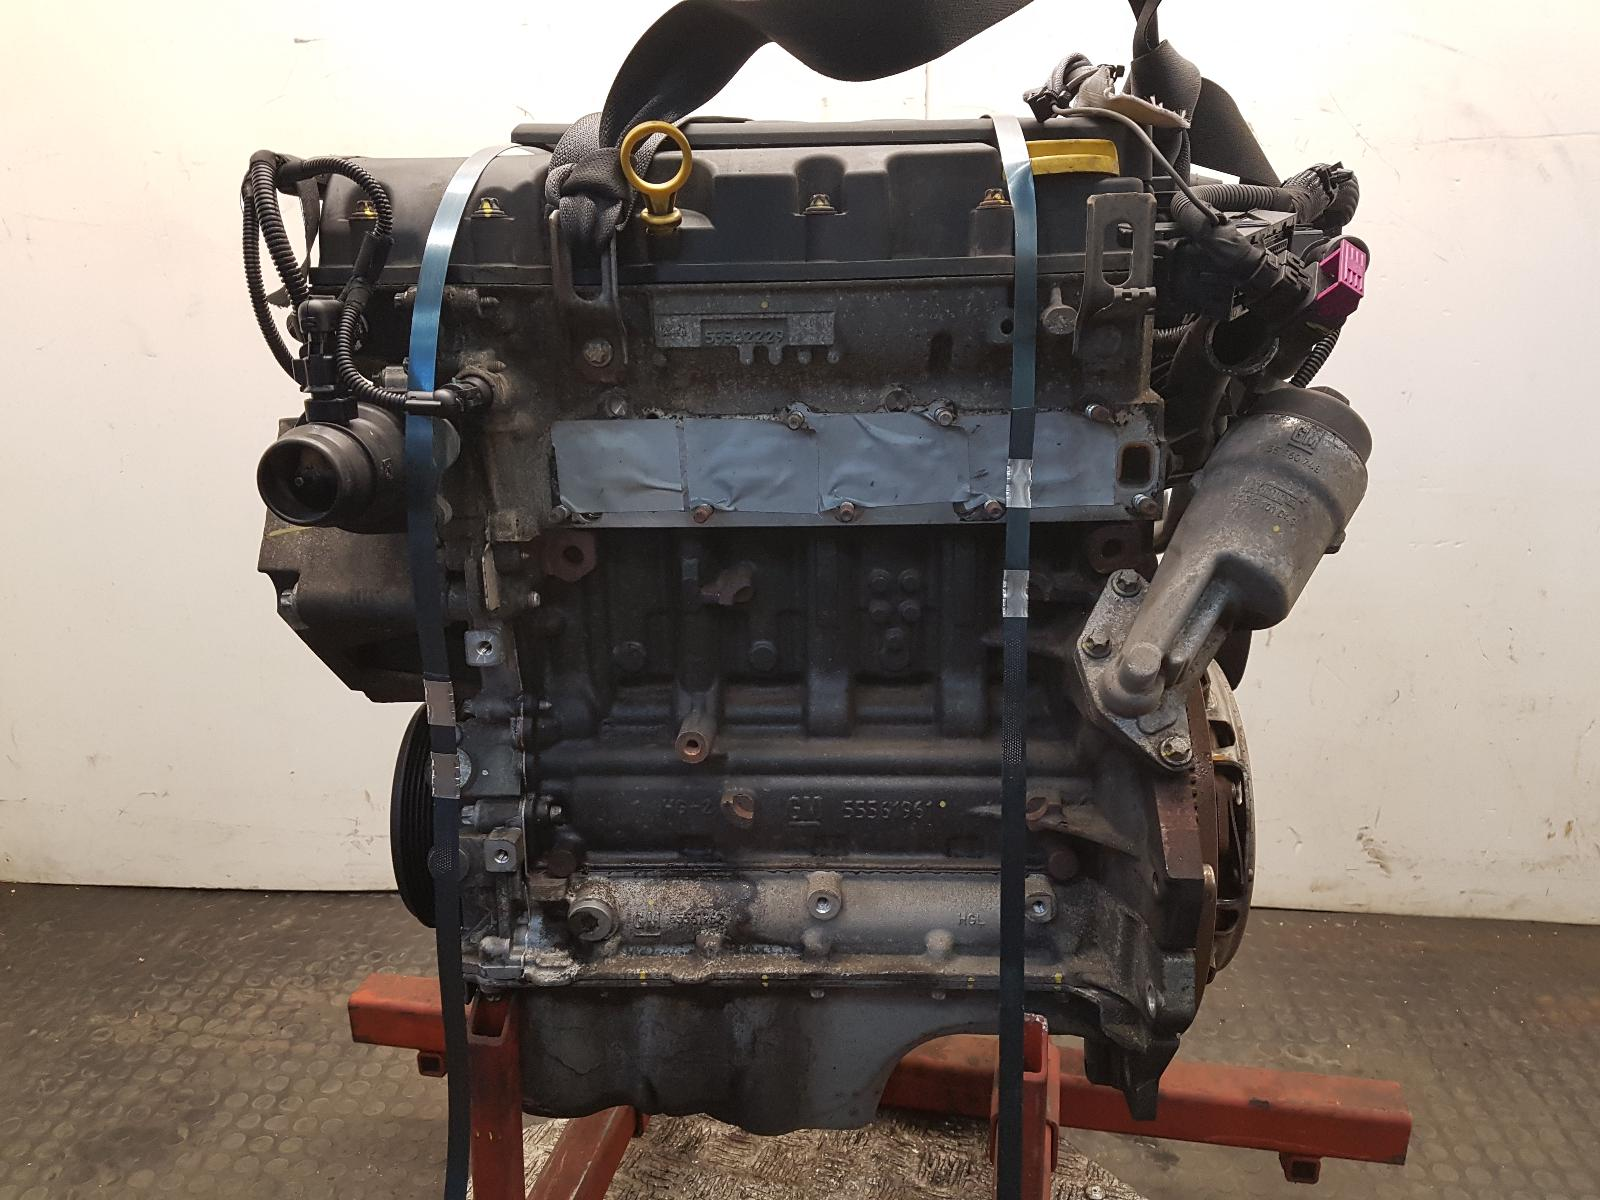 Image for a 2010 Vauxhall Corsa 1.2 Petrol  Engine